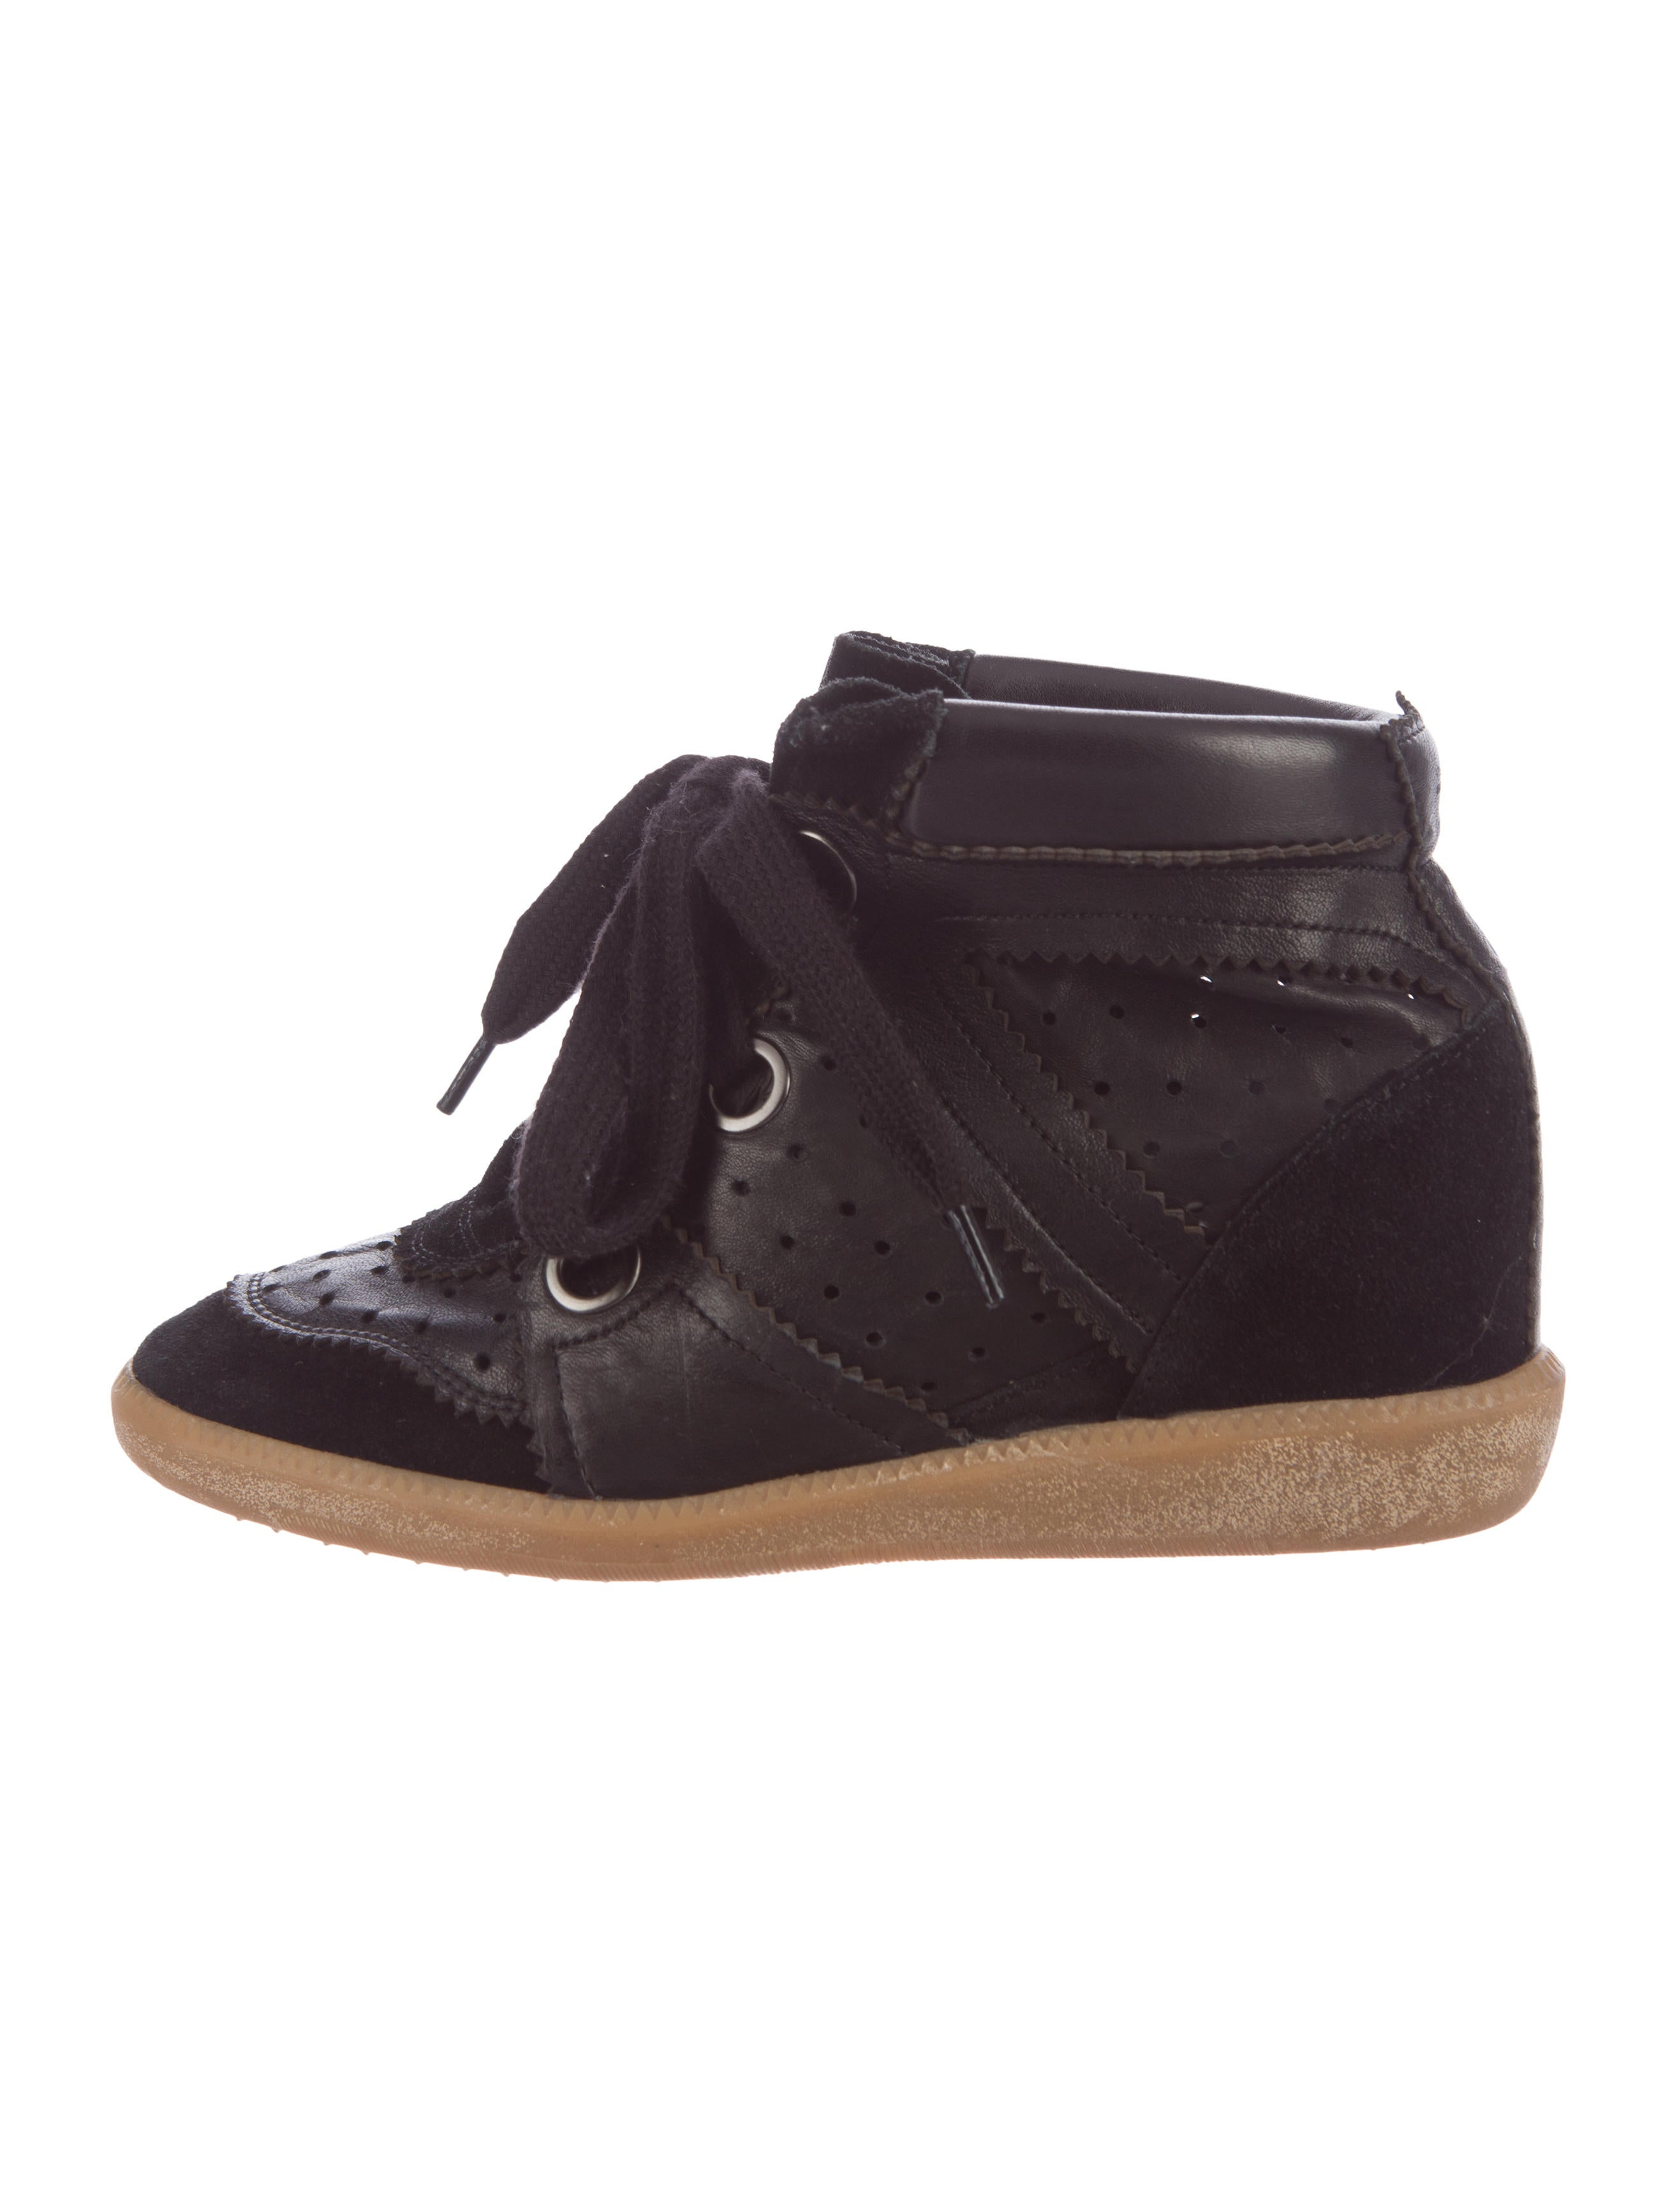 isabel marant bobby wedge sneakers shoes isa40525. Black Bedroom Furniture Sets. Home Design Ideas